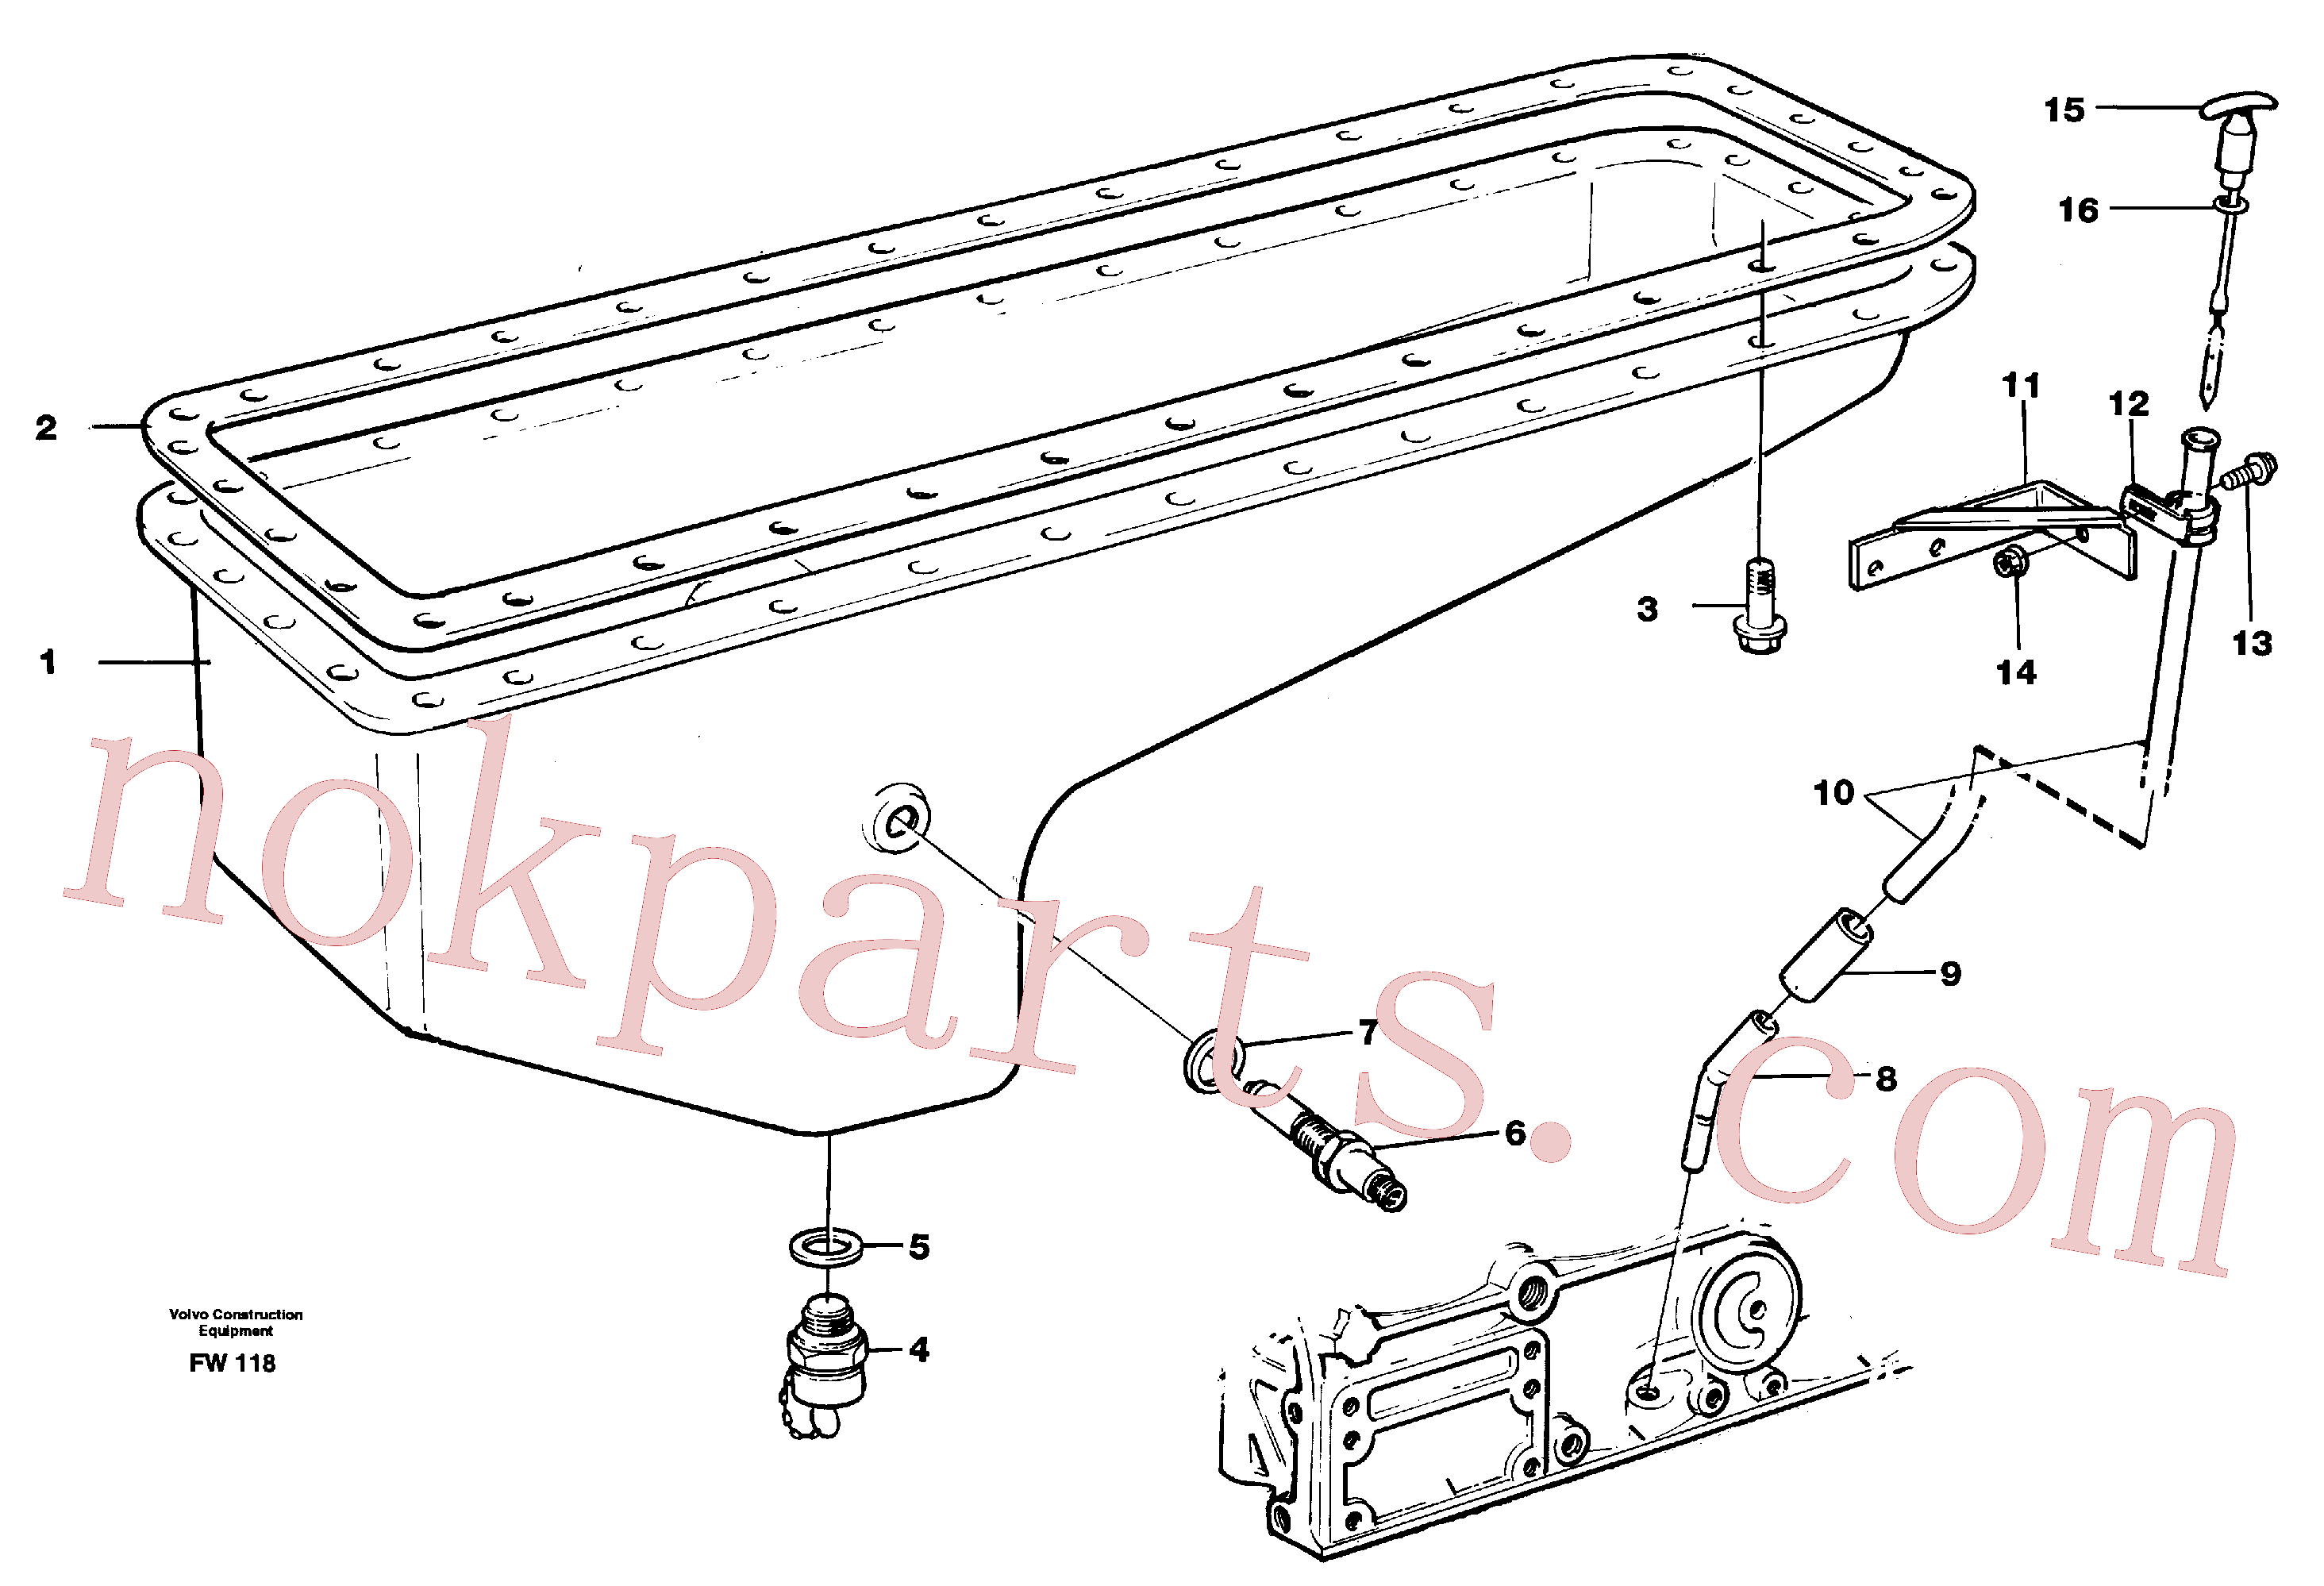 PJ5600007 for Volvo Oil sump(FW118 assembly)